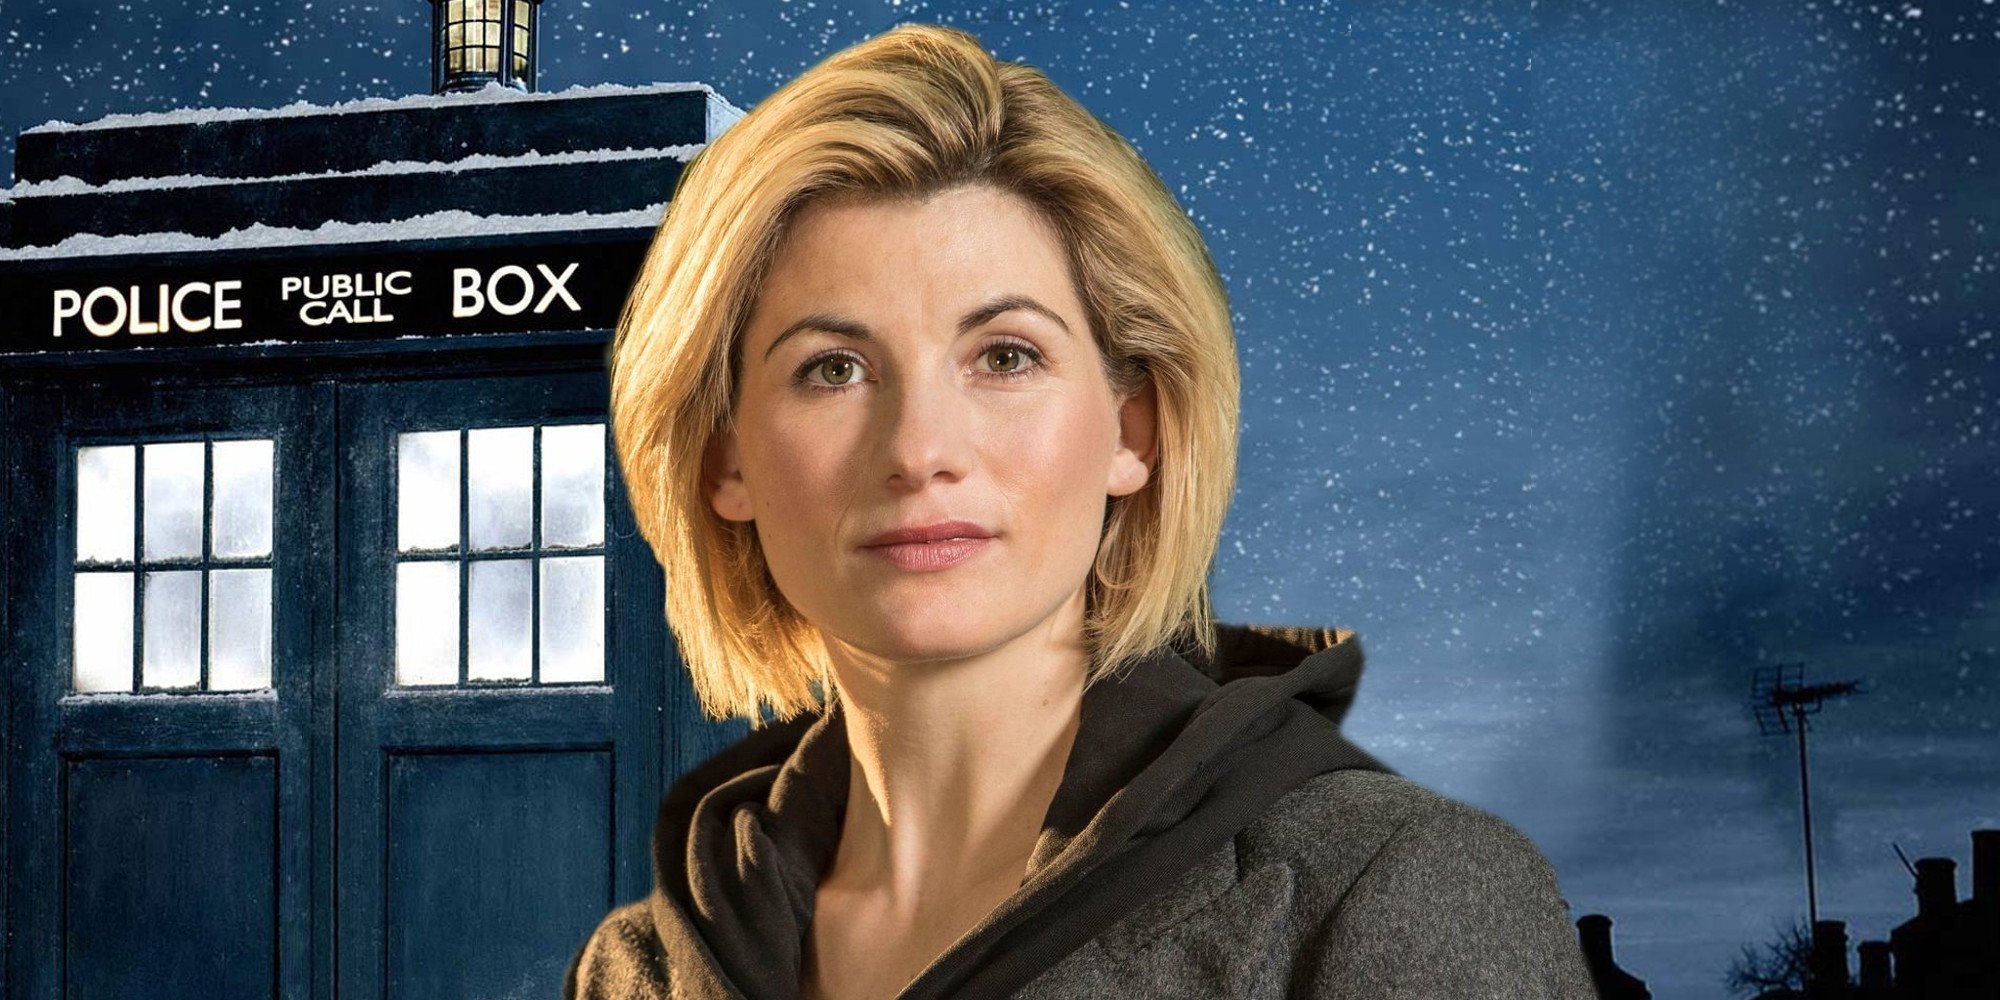 Jodi Whitaker as New Doctor Who Police Box